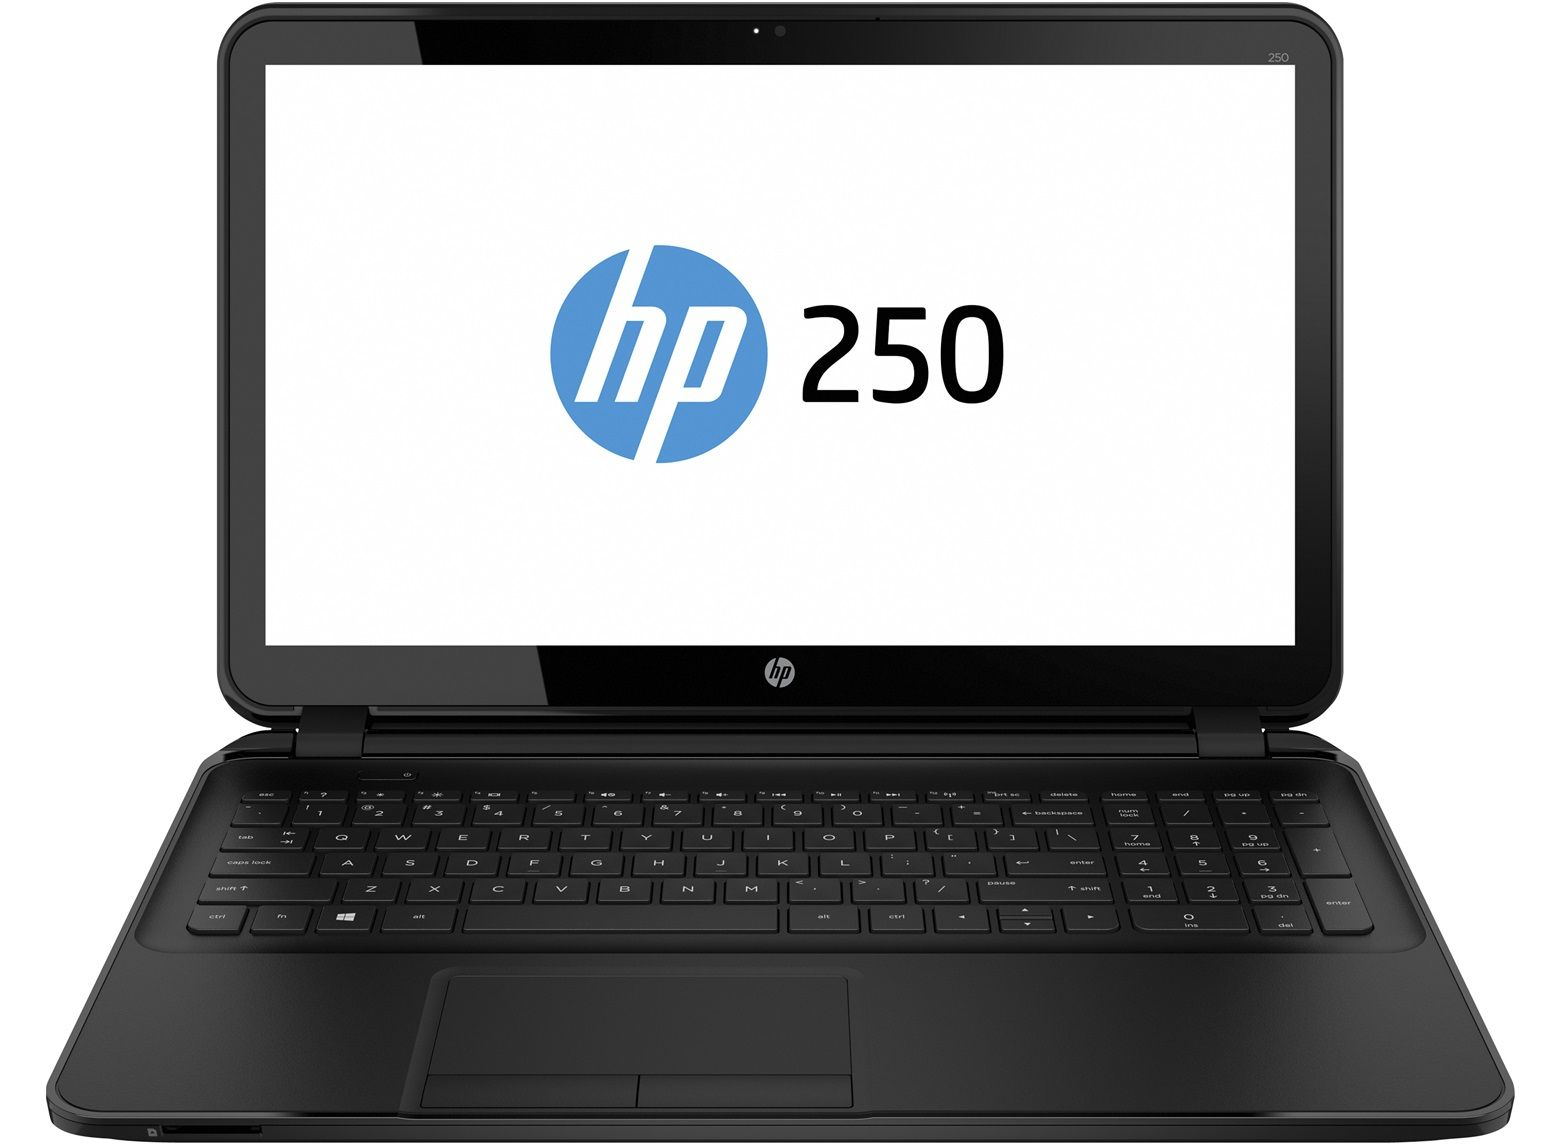 HP 250 G5 - Click Image to Close